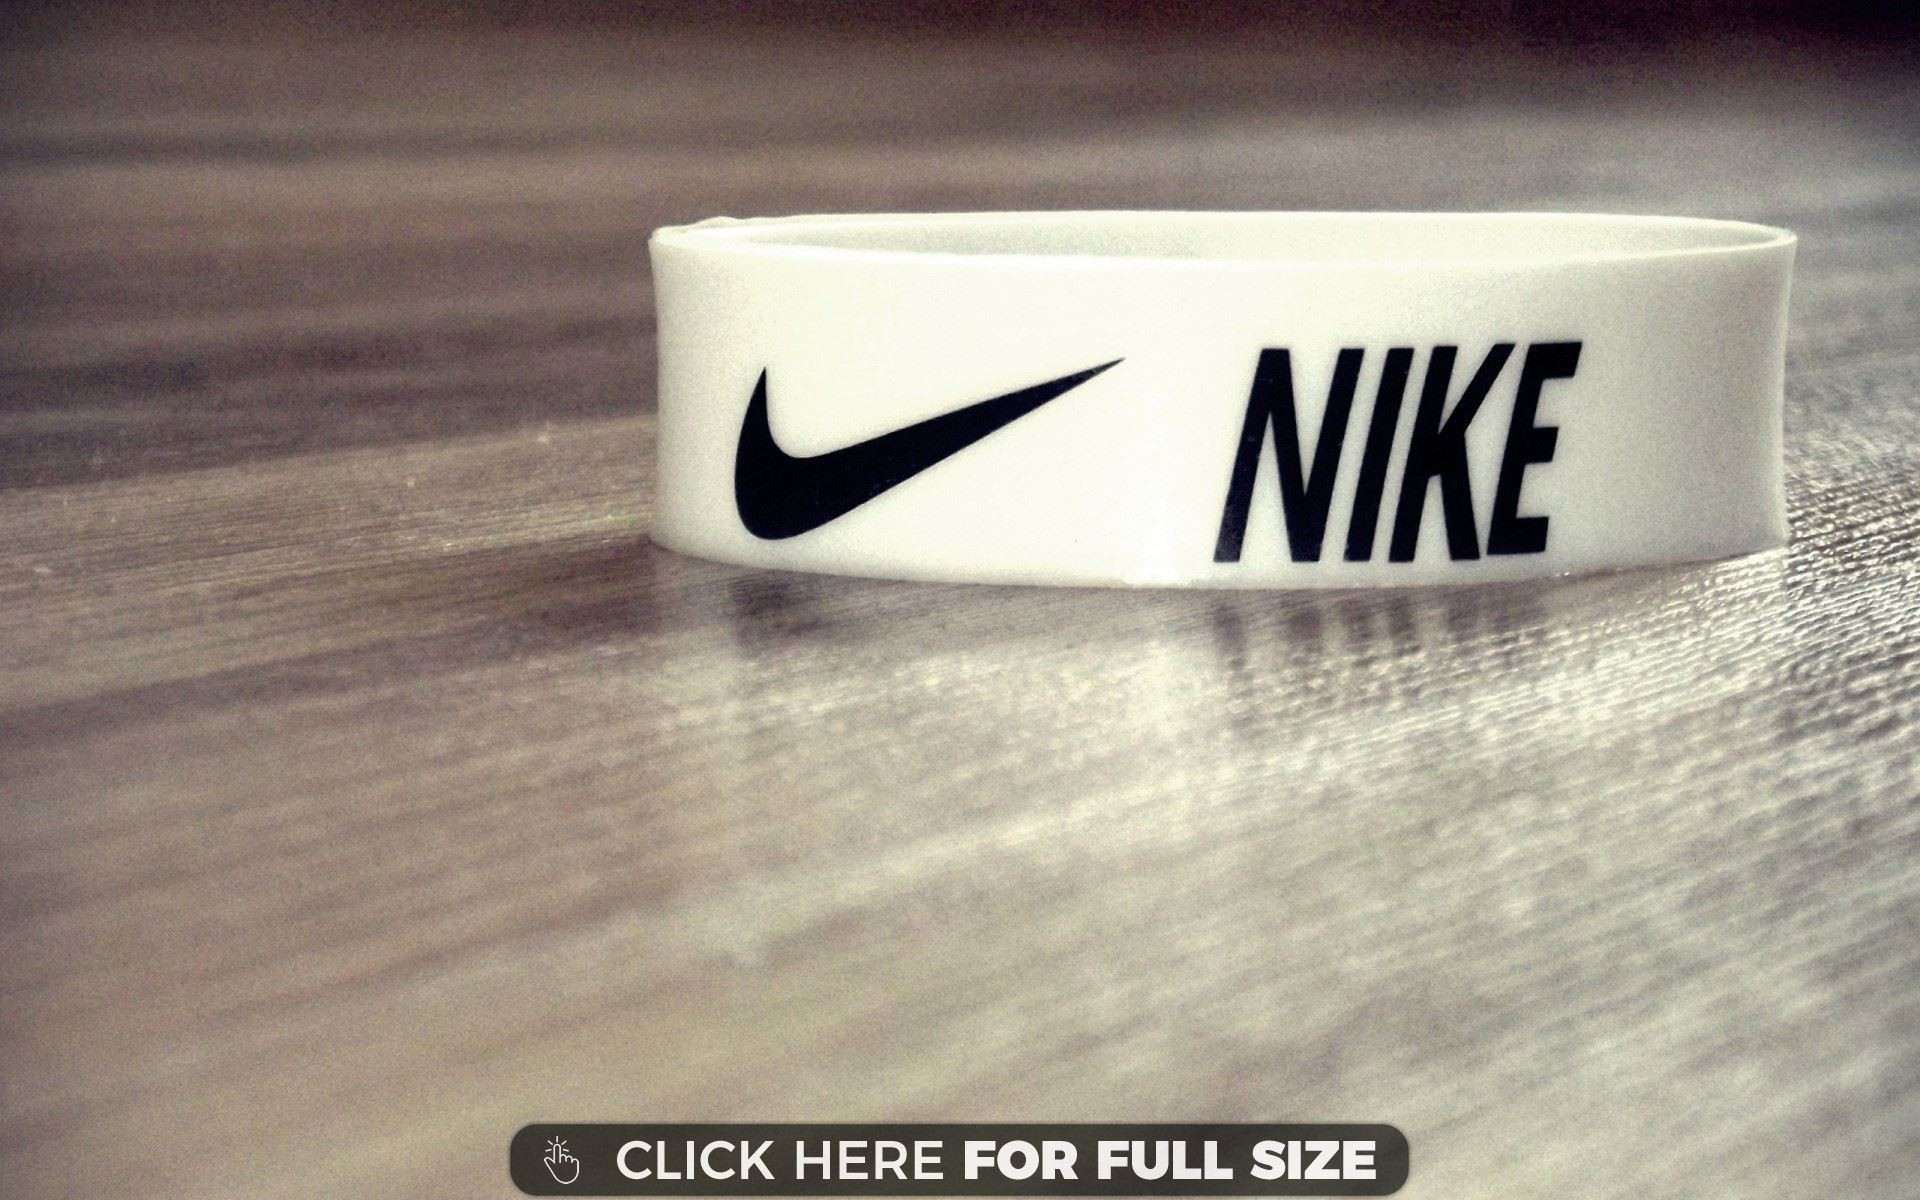 1920x1200   Hd Wallpapers Nike Shoes 1200 X 700 1016 Kb Png | HD  Wallpapers - 100%